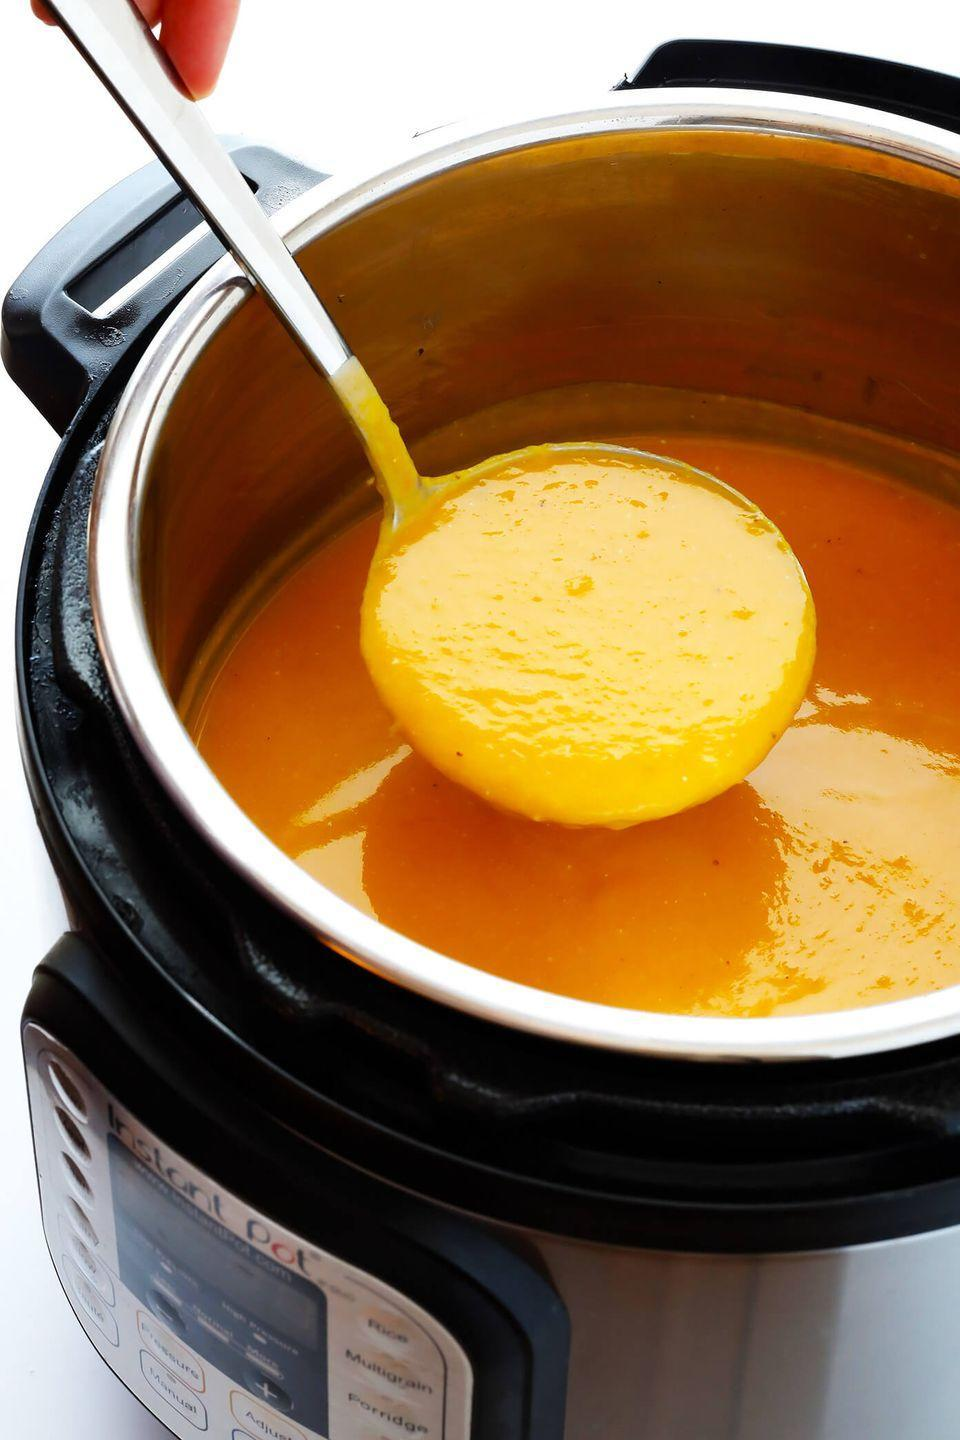 """<p>Perfect for a pre-meal snack, or a tasty appetizer.</p><p>Get the recipe from <a href=""""https://www.gimmesomeoven.com/instant-pot-butternut-squash-soup/"""" rel=""""nofollow noopener"""" target=""""_blank"""" data-ylk=""""slk:Gimme Some Oven"""" class=""""link rapid-noclick-resp"""">Gimme Some Oven</a>.</p>"""